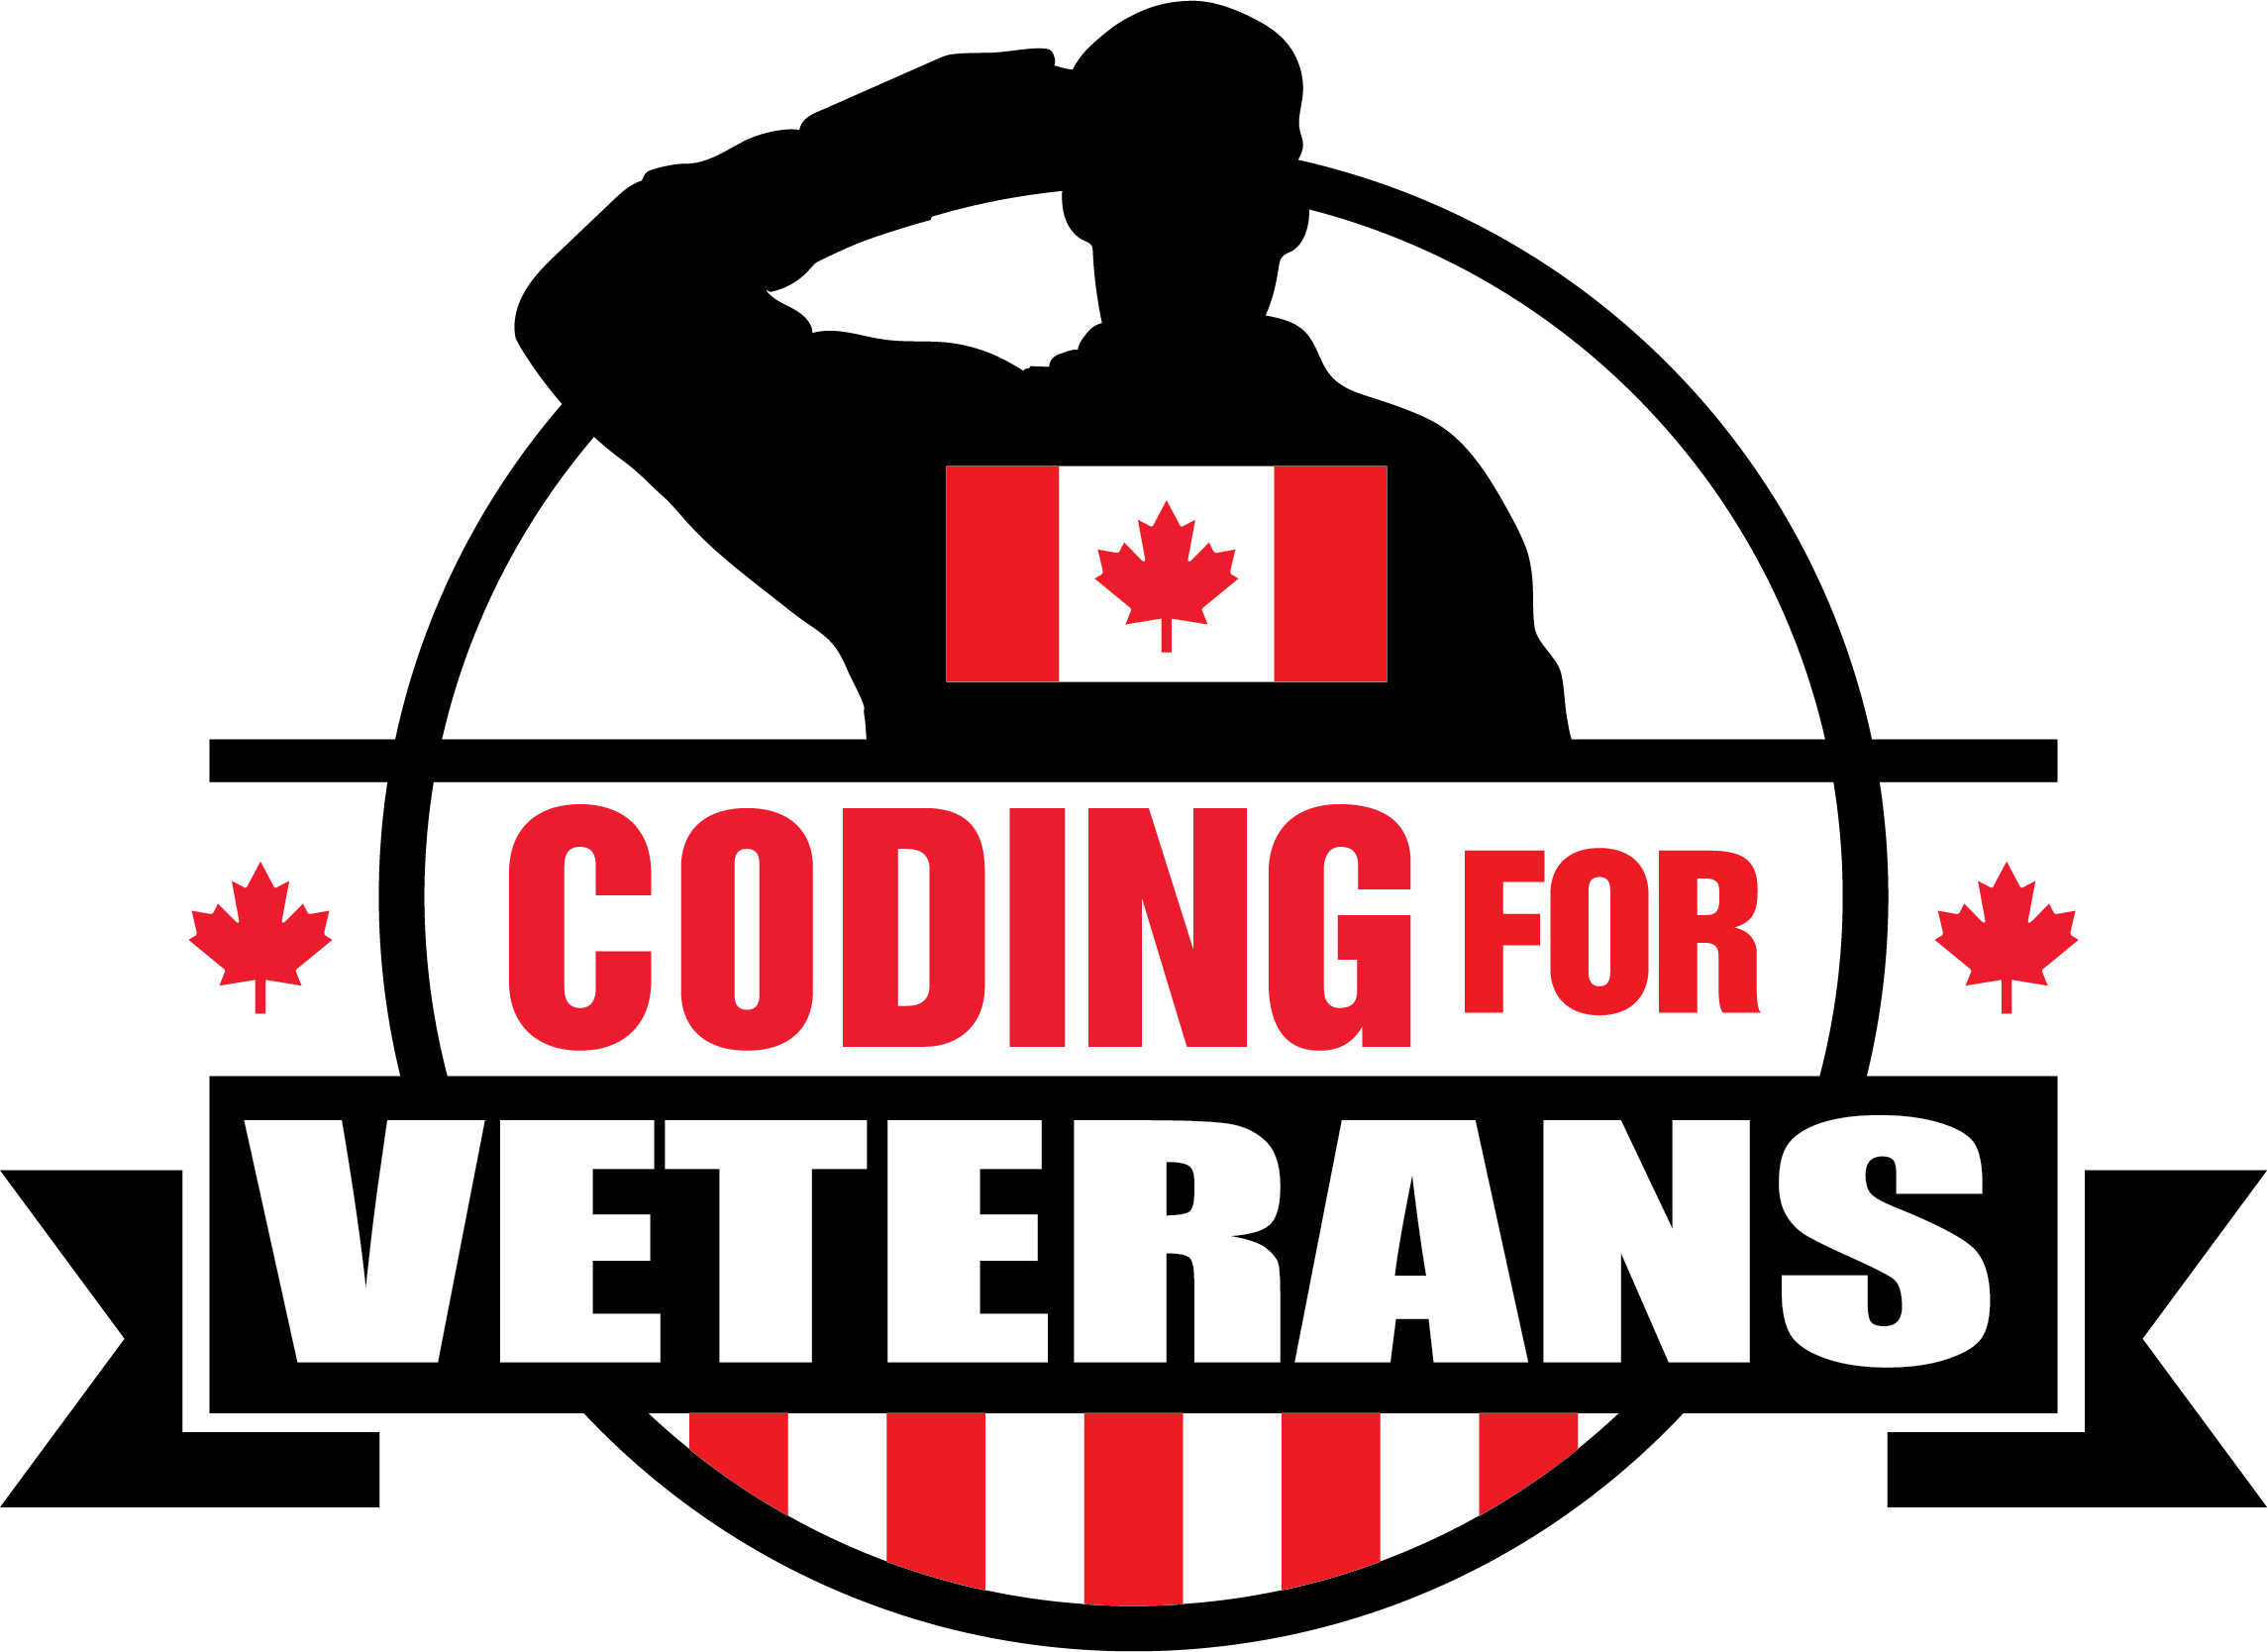 Coding for Veterans LOGO-2018